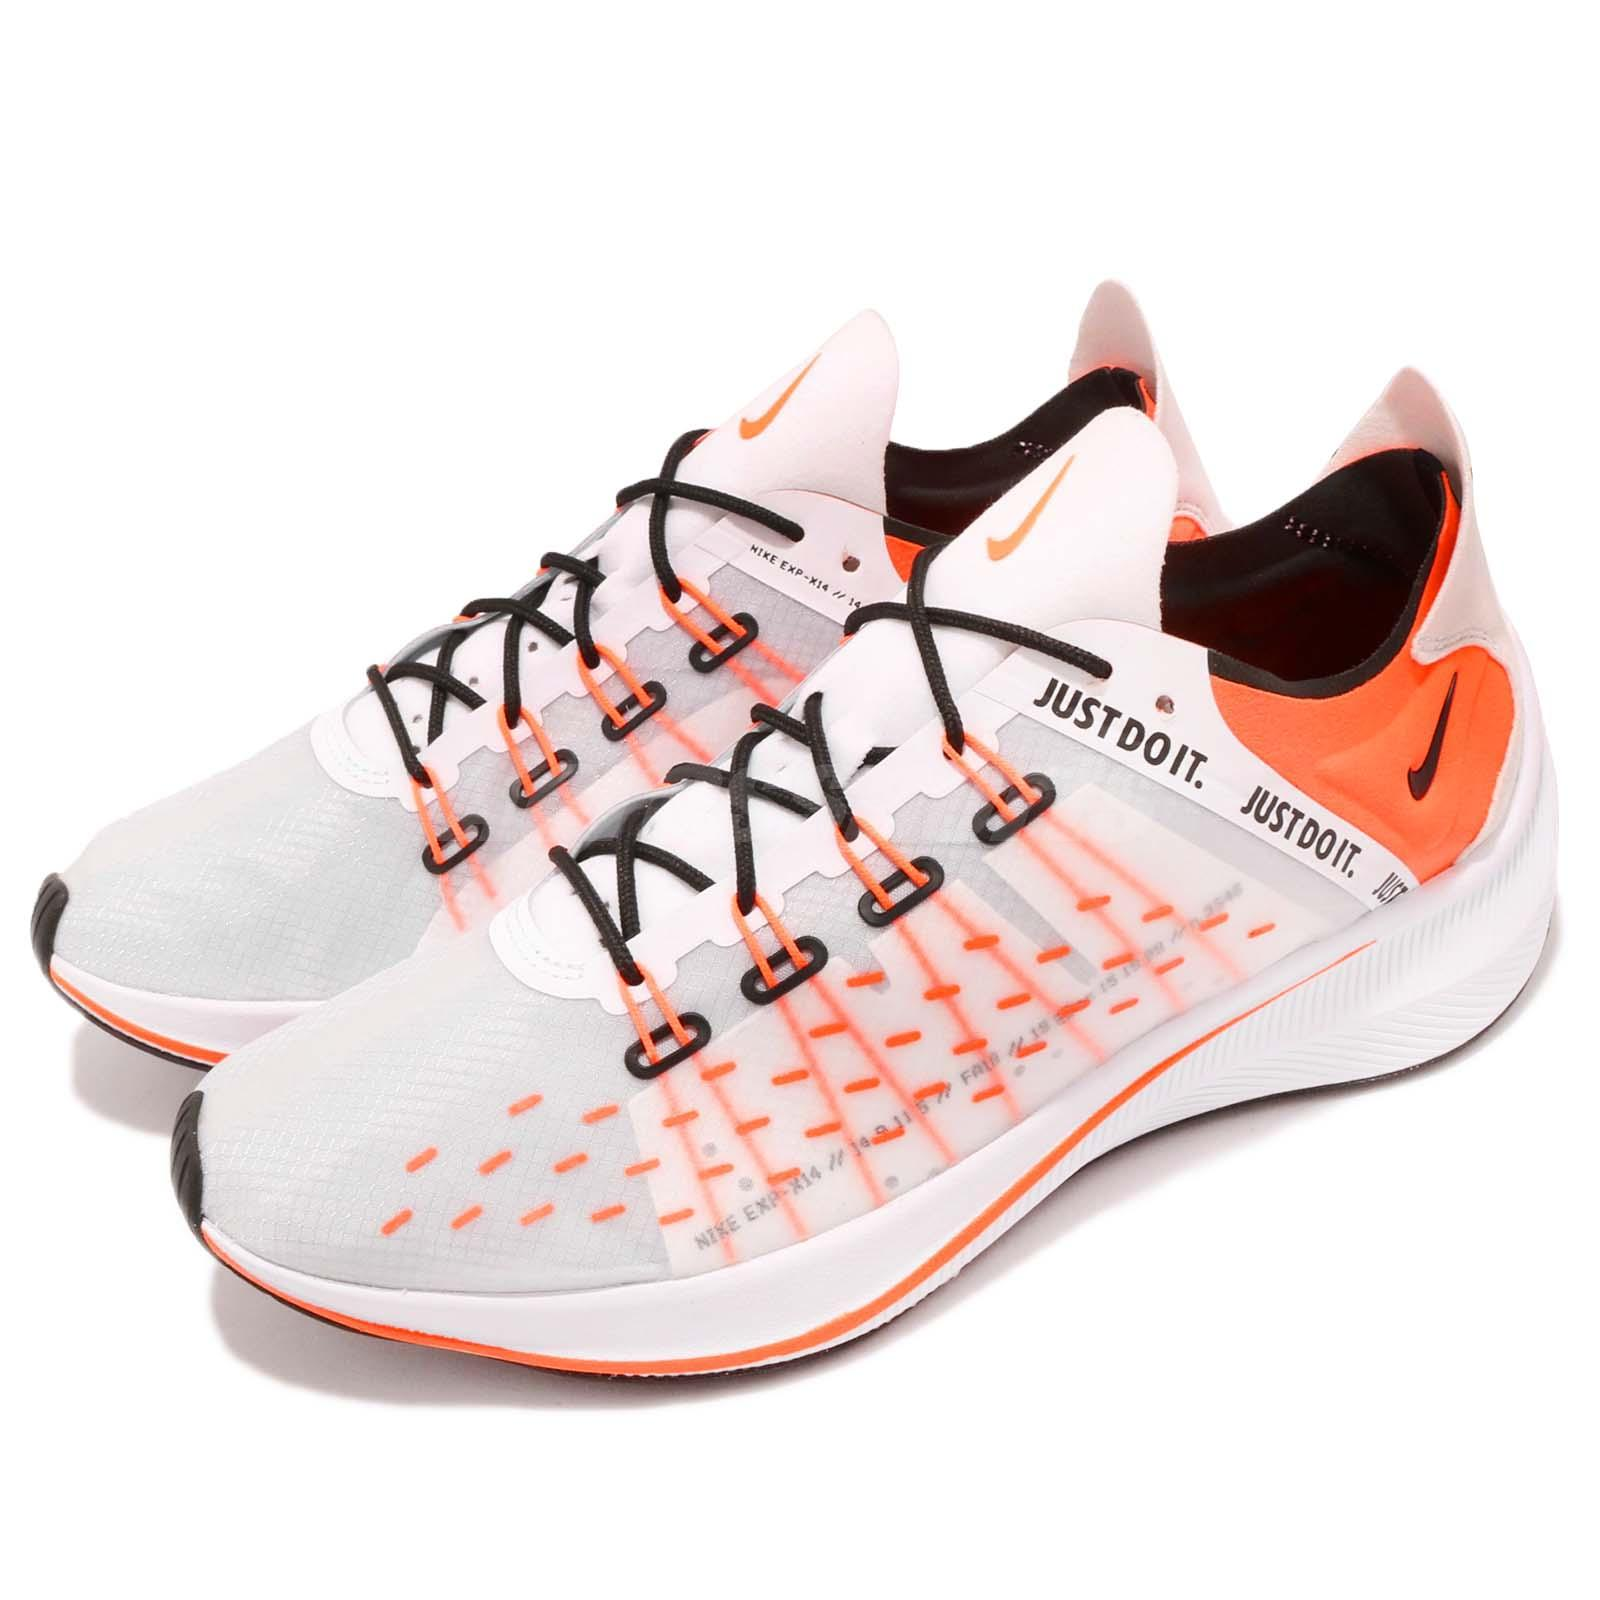 separation shoes 232c3 63c16 Details about Nike EXP-X14 SE Just Do It White Orange Men Running Shoes  Sneakers AO3095-100